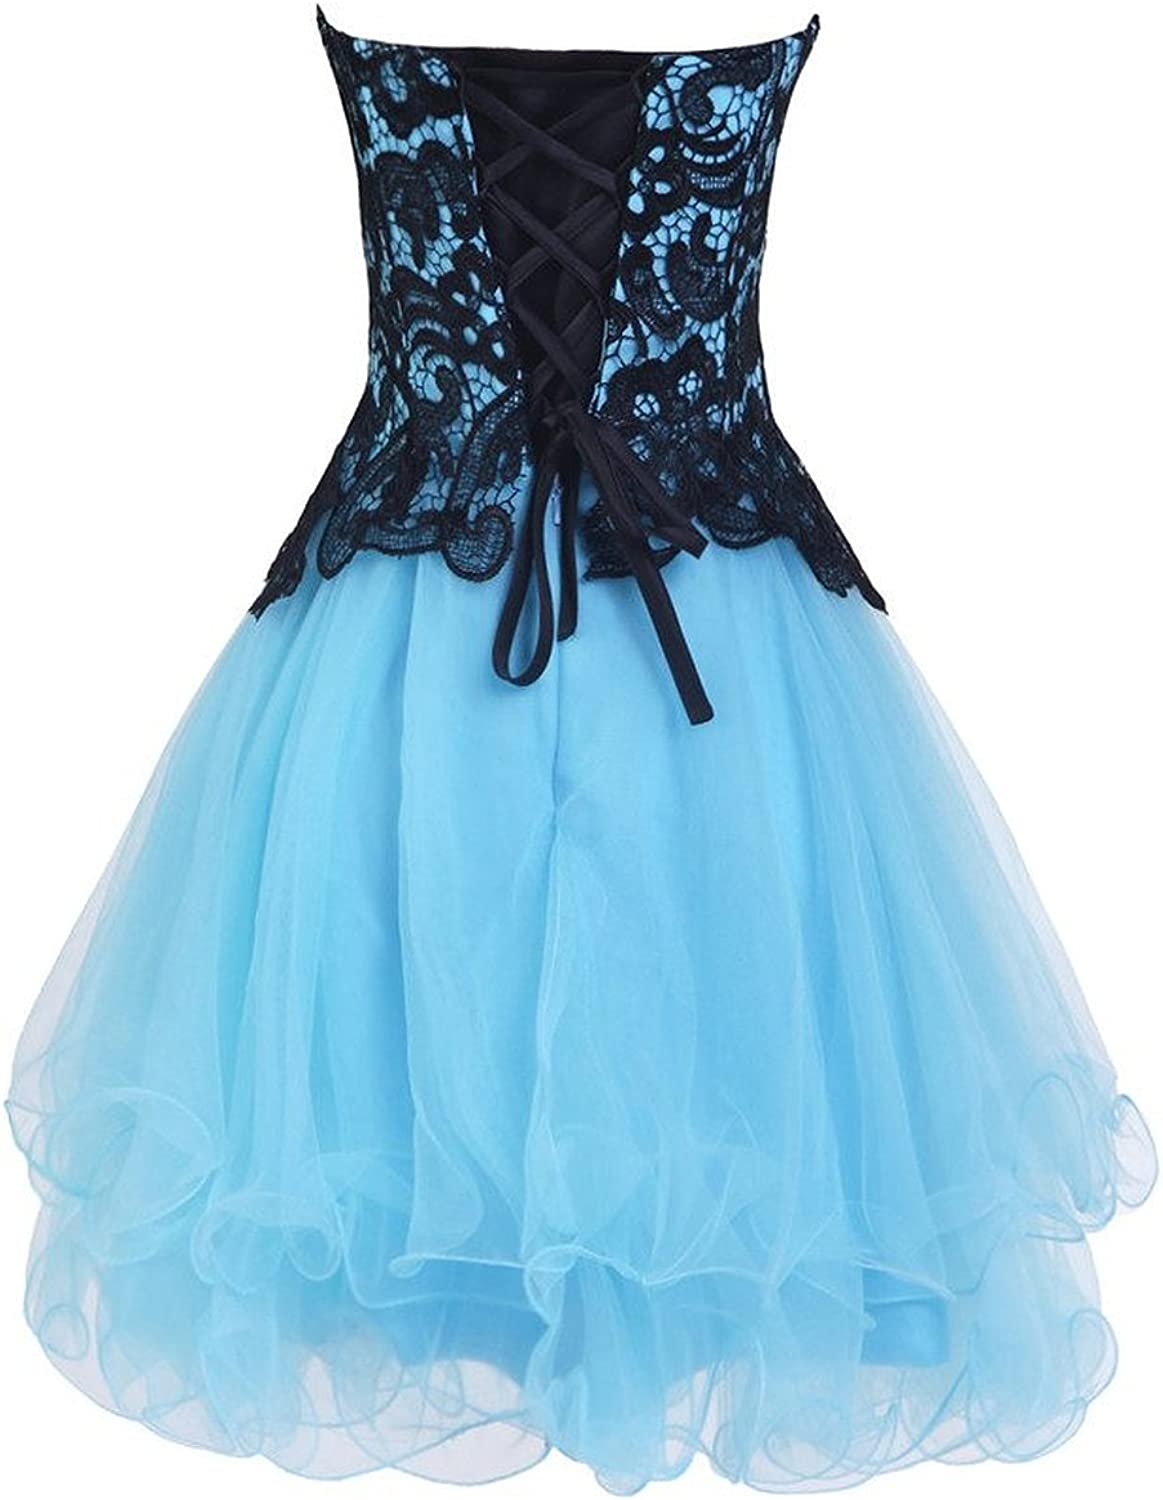 Sweet Bridal Womens Sweetheart Tulle Short Prom Dress Homecoming Dress